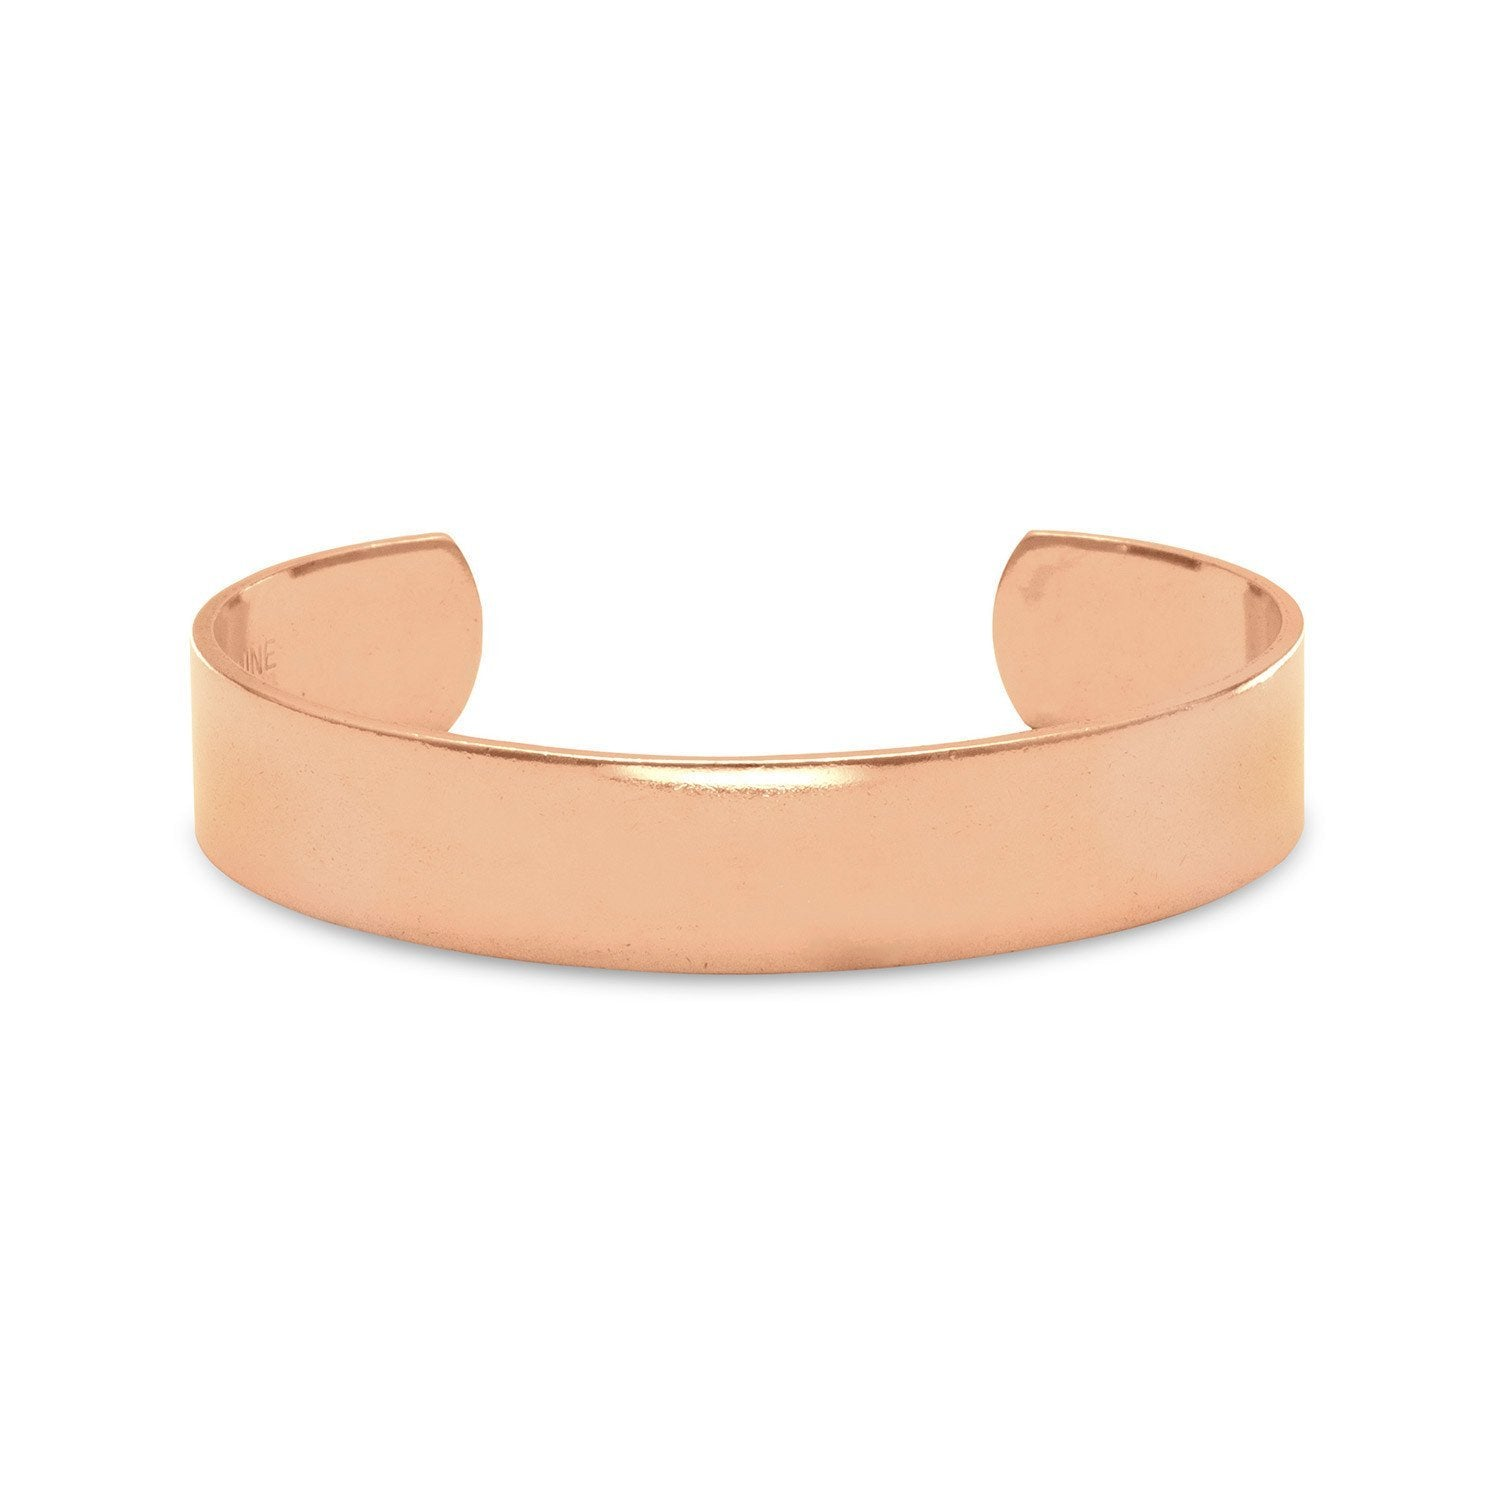 18k Rose Gold Plated Polished Cuff Bracelet